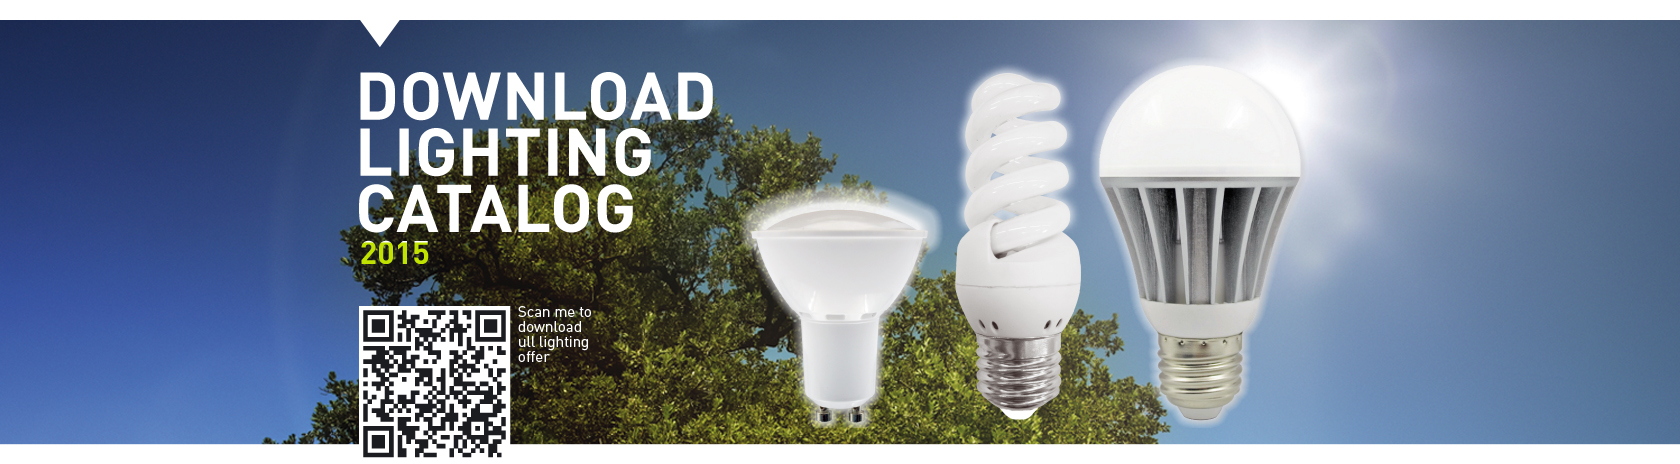 Download-Lighting-catalog_1680x464